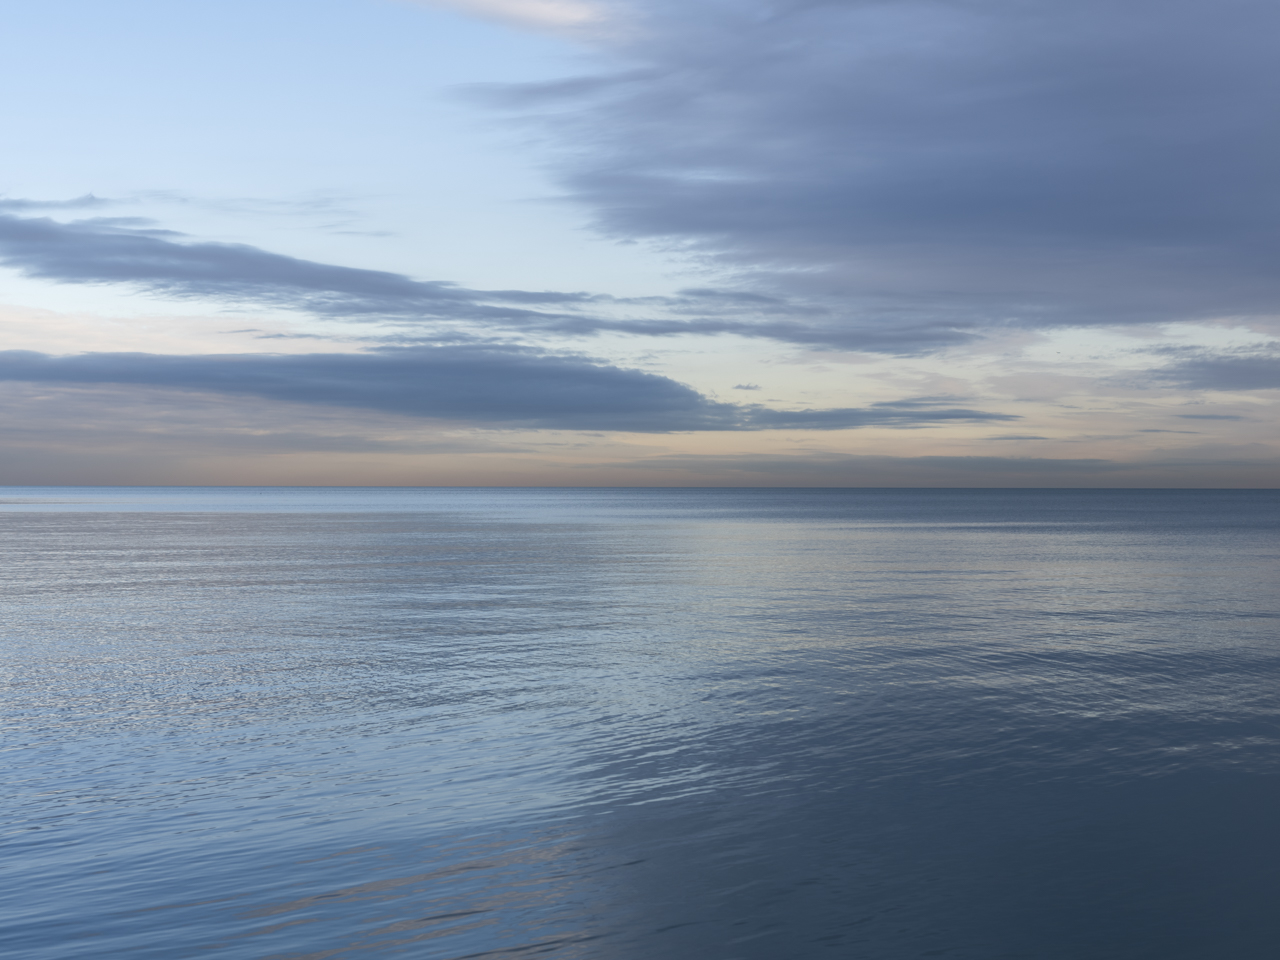 an early morning on Lake Michigan, clouds drift thinly through a blue and orange sky, a still lake surface reflecting their form and color